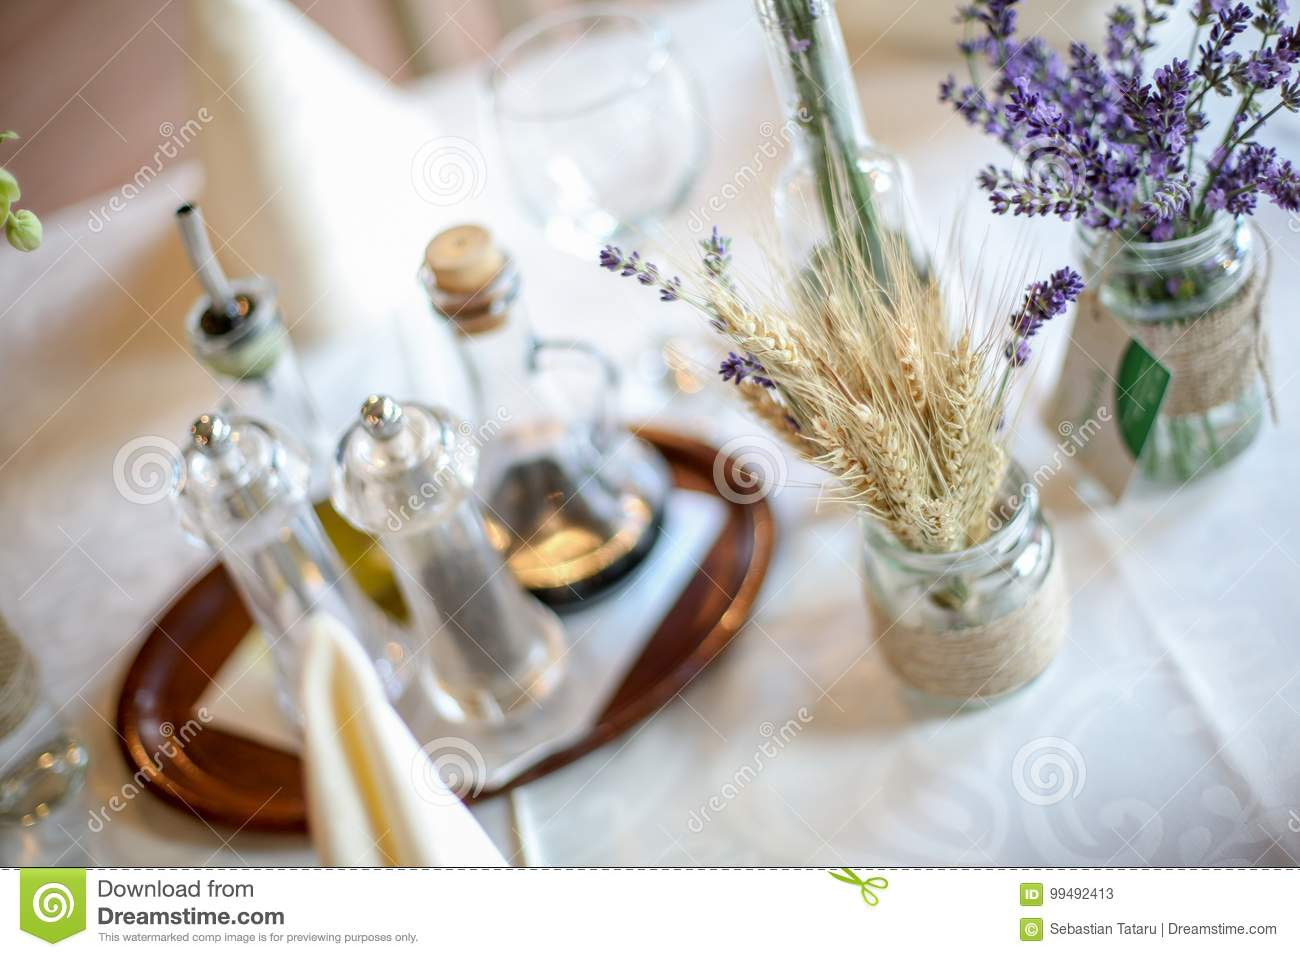 Wedding Decoration Table With Lavender And Greenery Stock Image